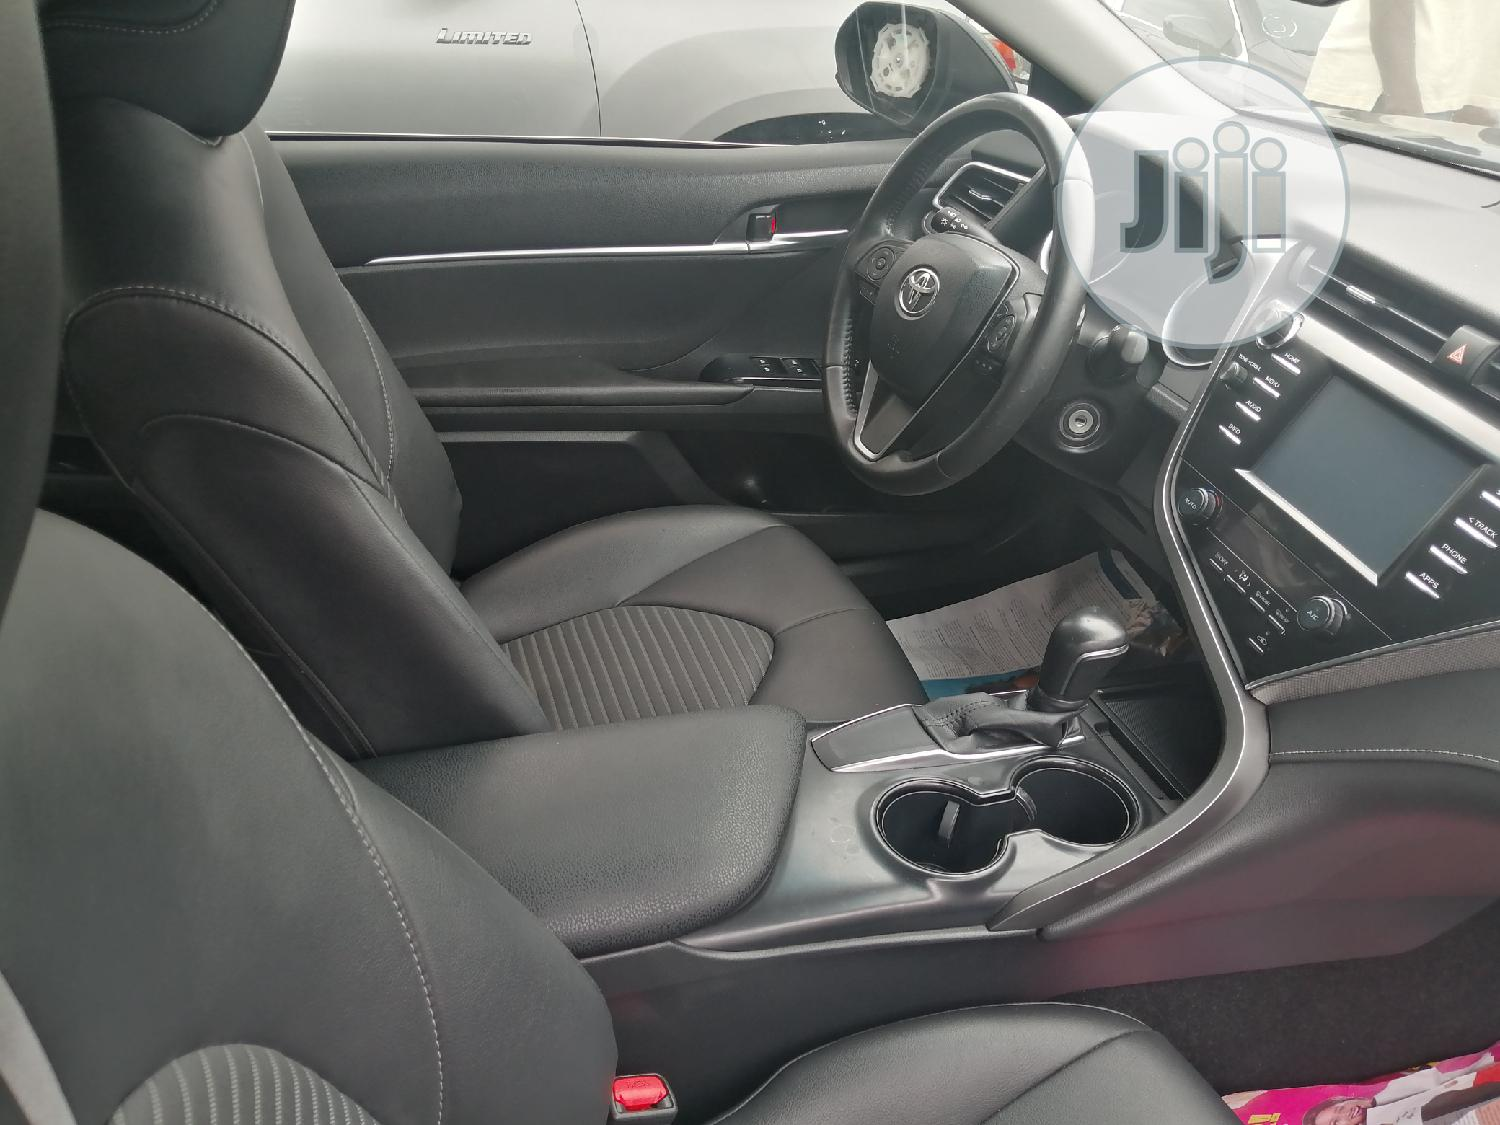 Toyota Camry 2018 SE FWD (2.5L 4cyl 8AM) Green | Cars for sale in Apapa, Lagos State, Nigeria